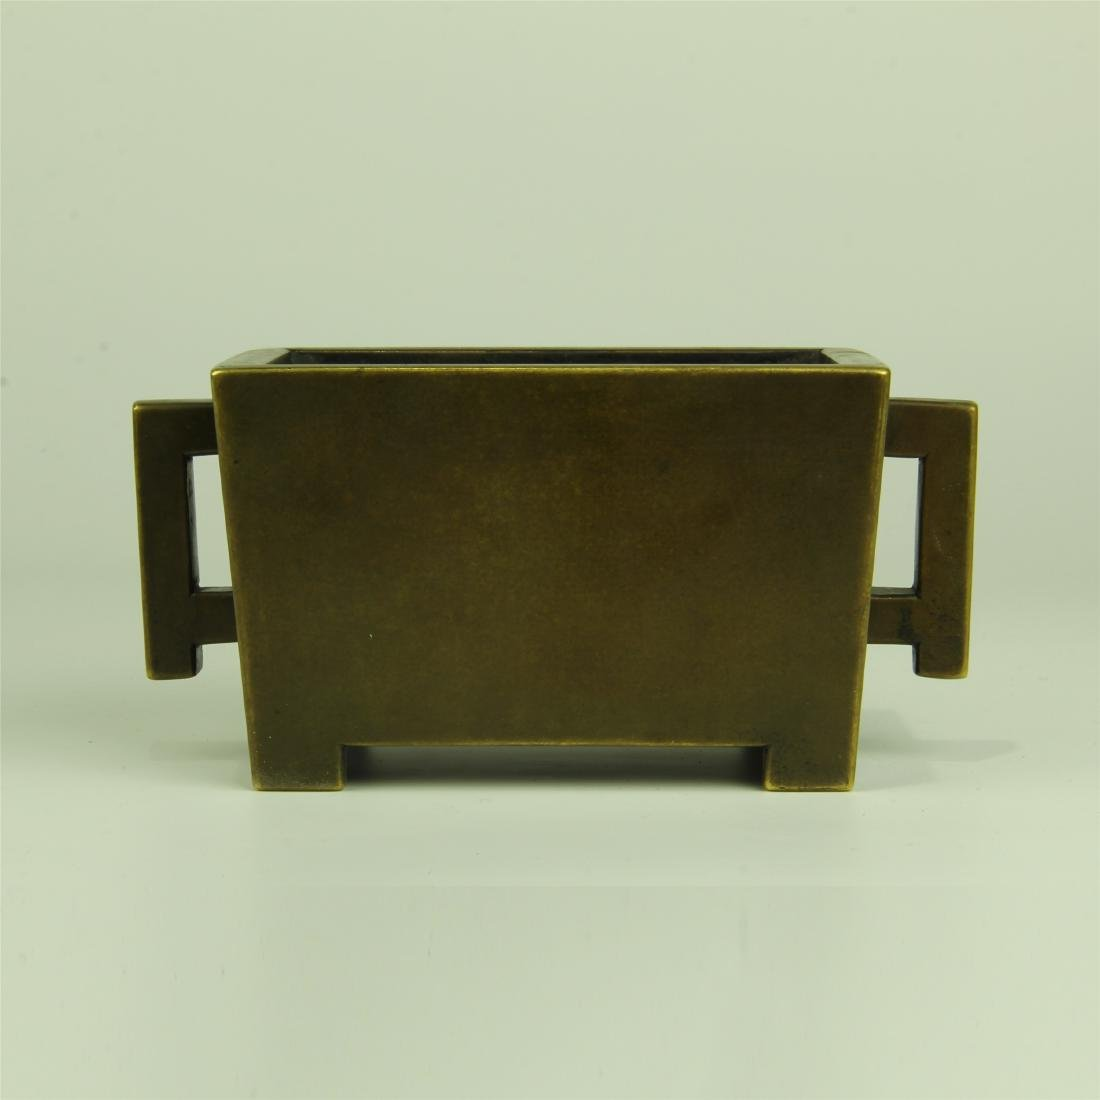 CHINESE BRONZE SQUARE INCENSE BURNER